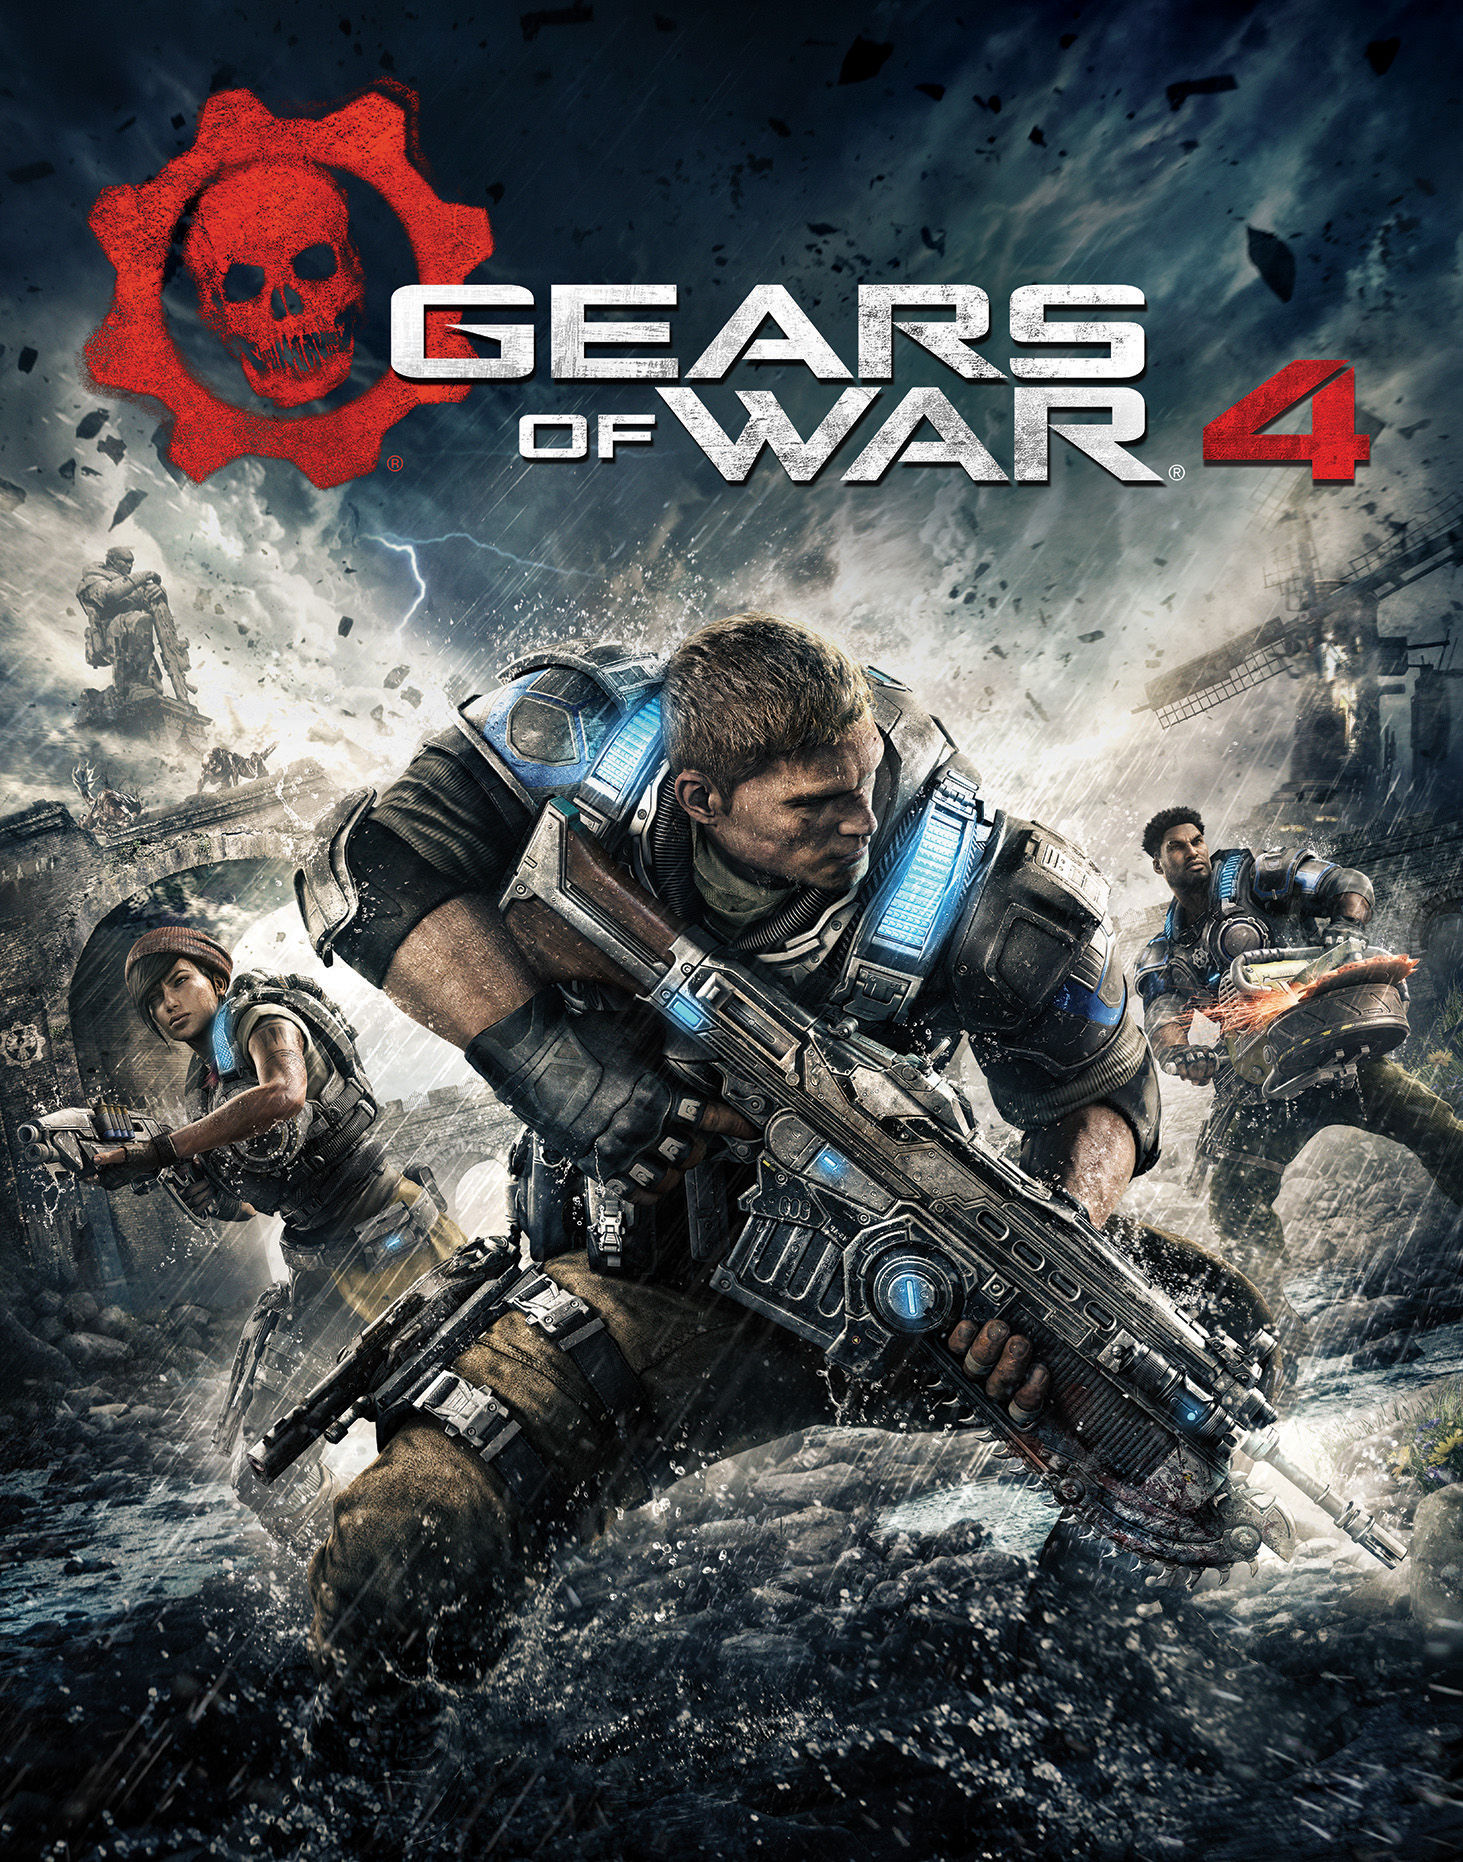 Gears Of War 4 hands-on preview and interview – 'We're not doing first person. We're staying true'